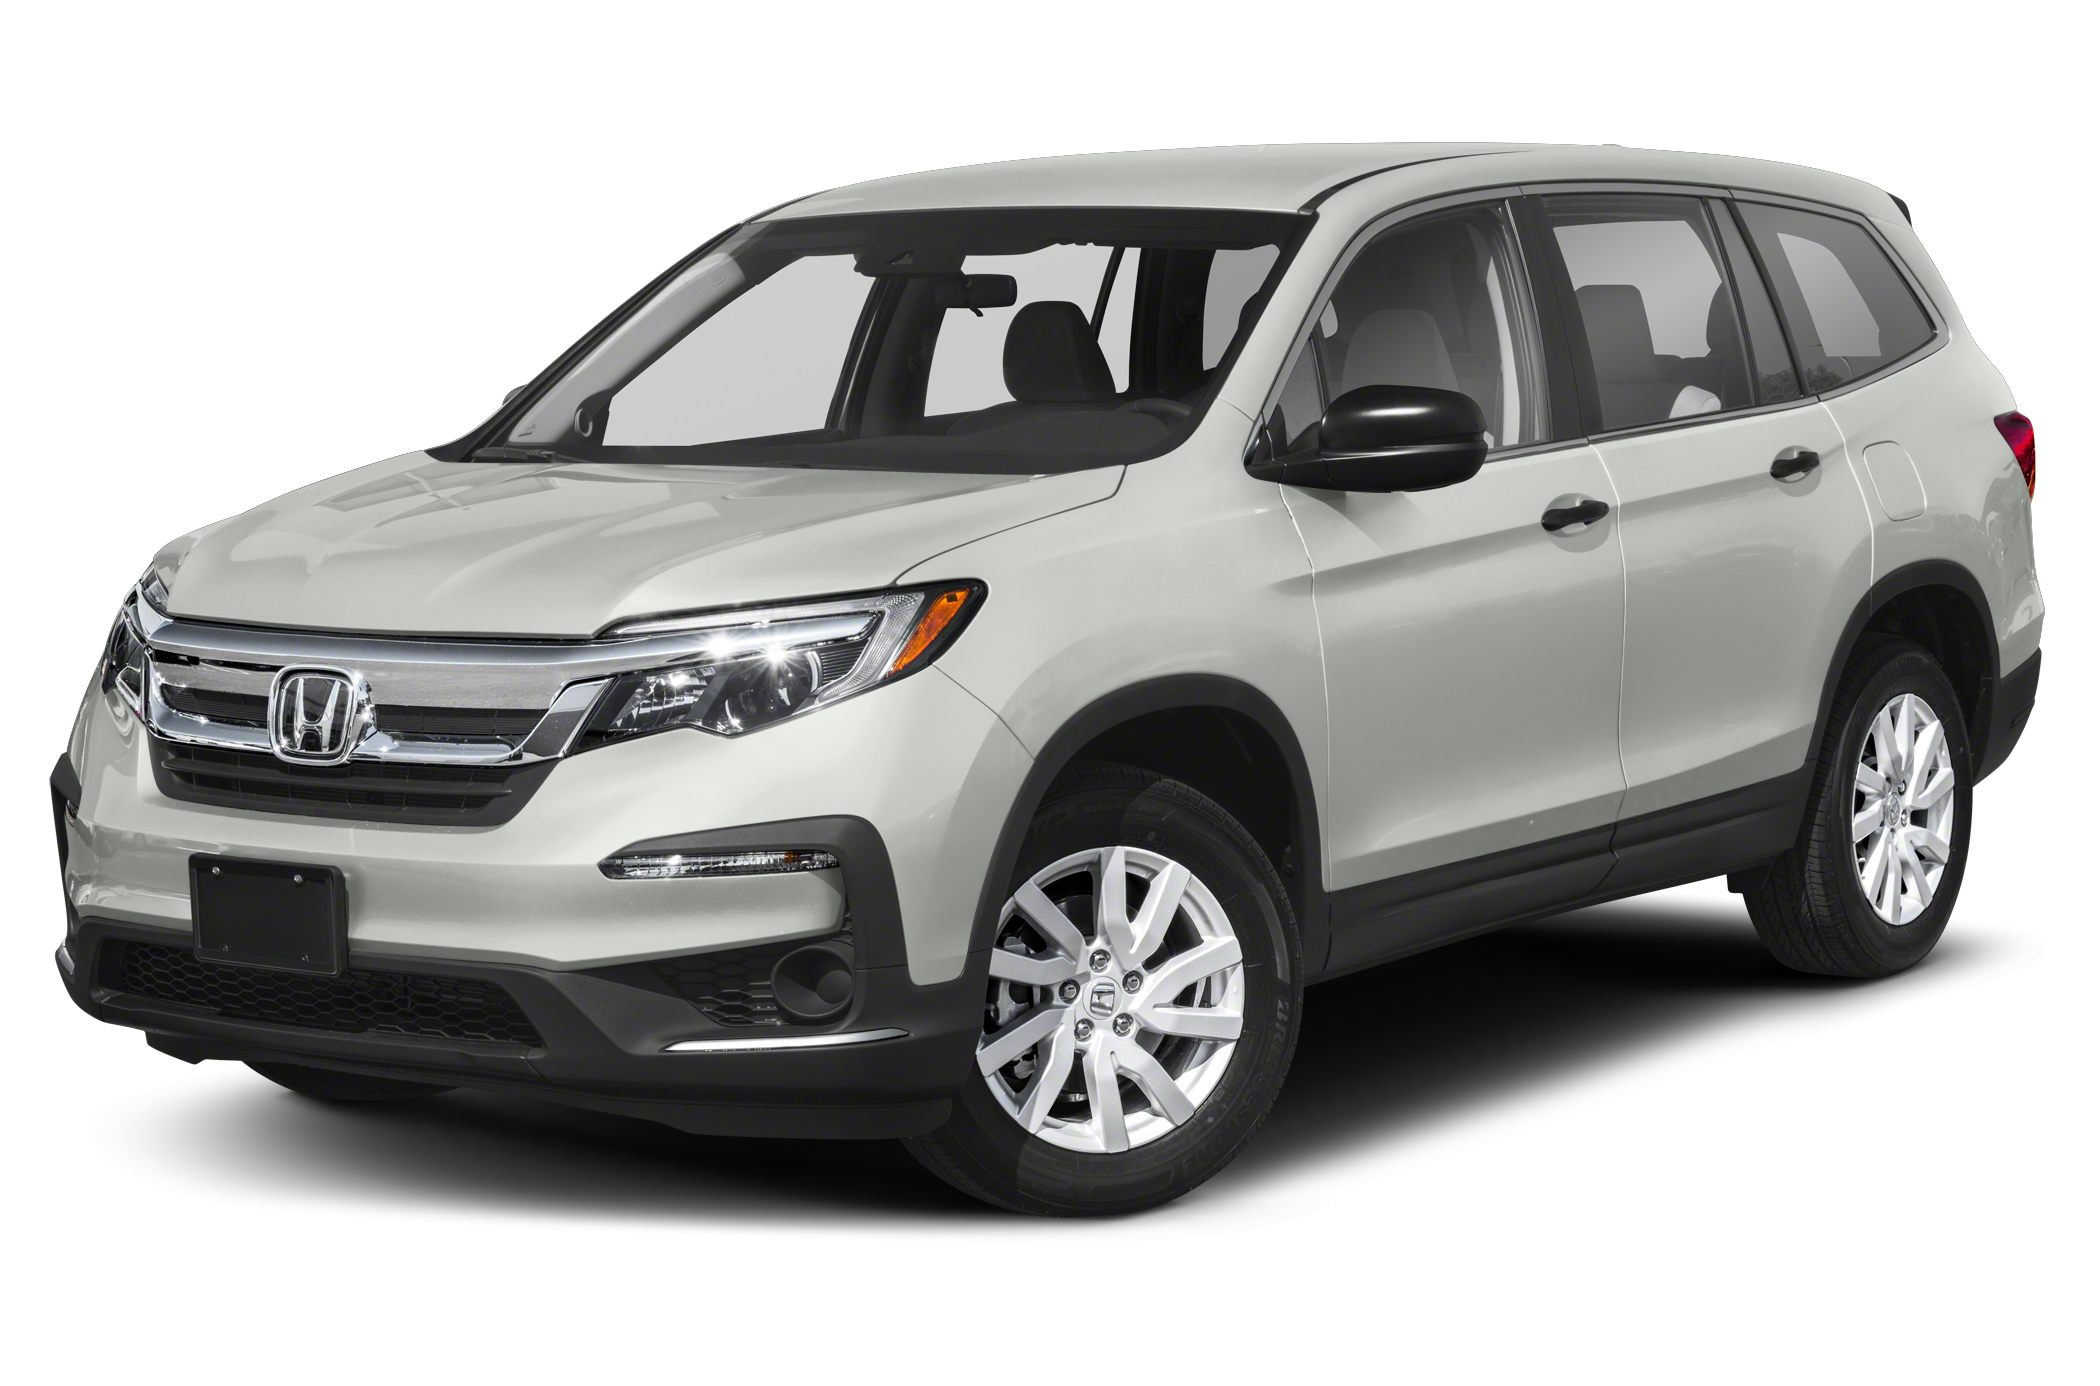 2019 Honda Pilot Deals Prices Incentives Leases Overview